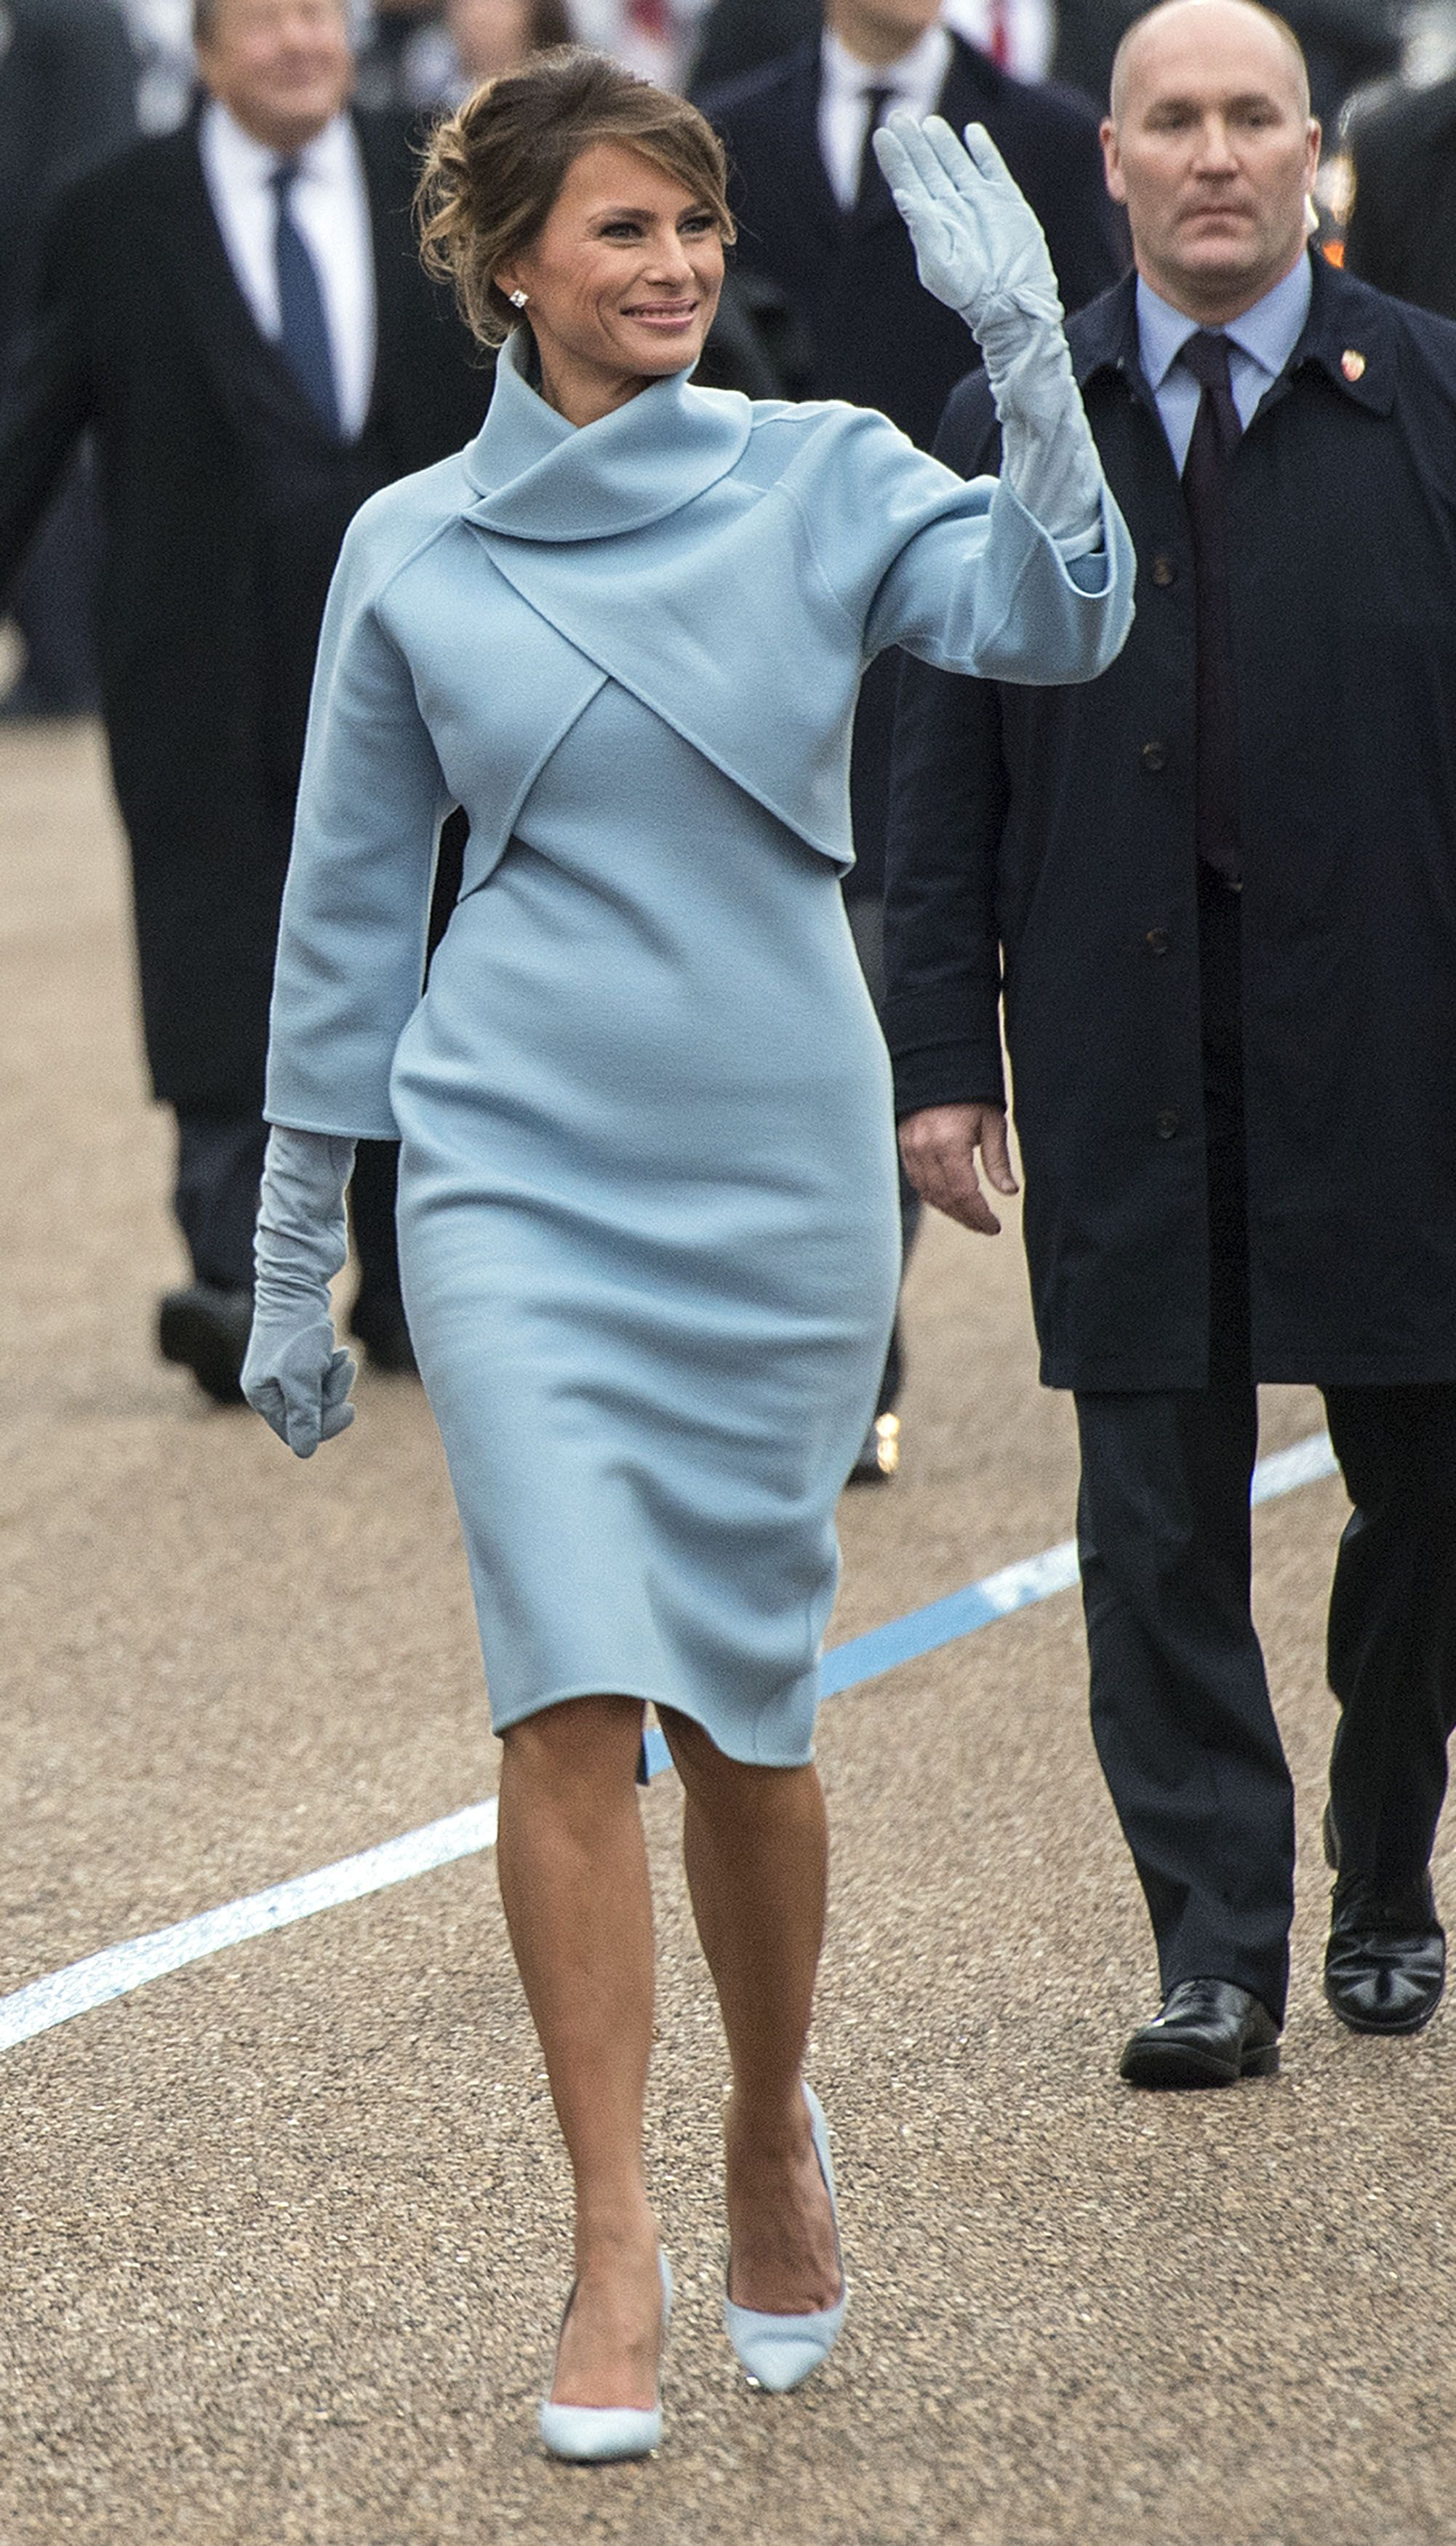 The Most Controversial First Lady Fashion Moments